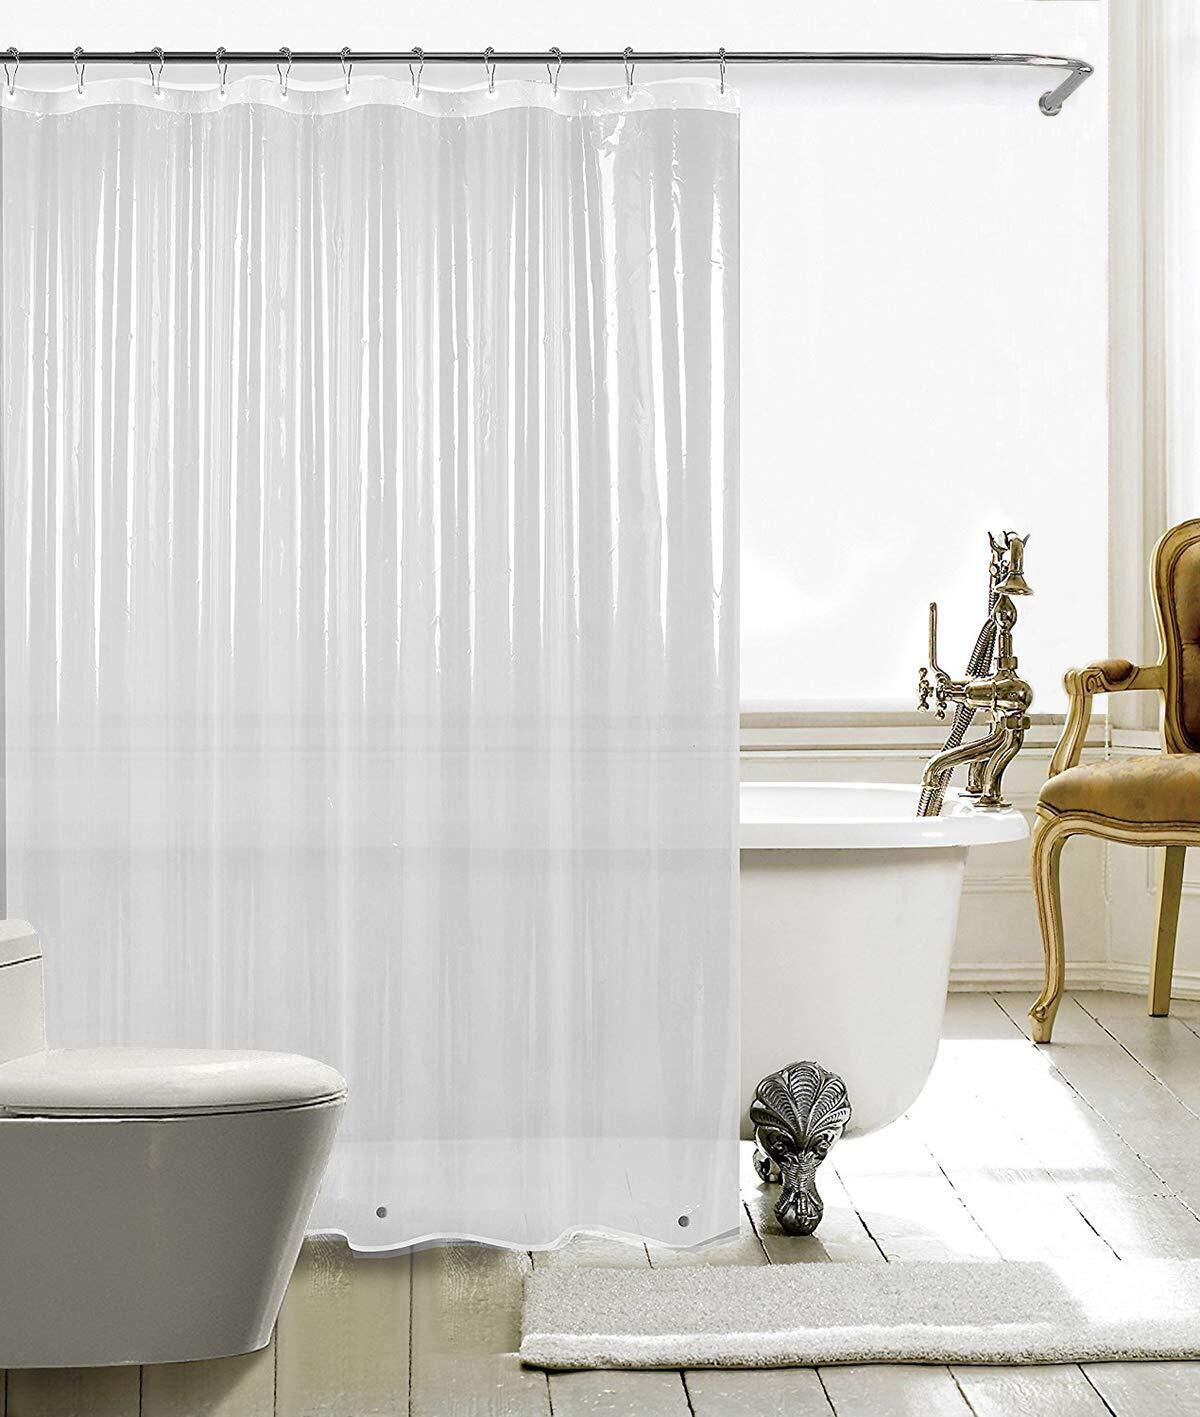 HARBOREST Shower Curtain Liner Clear